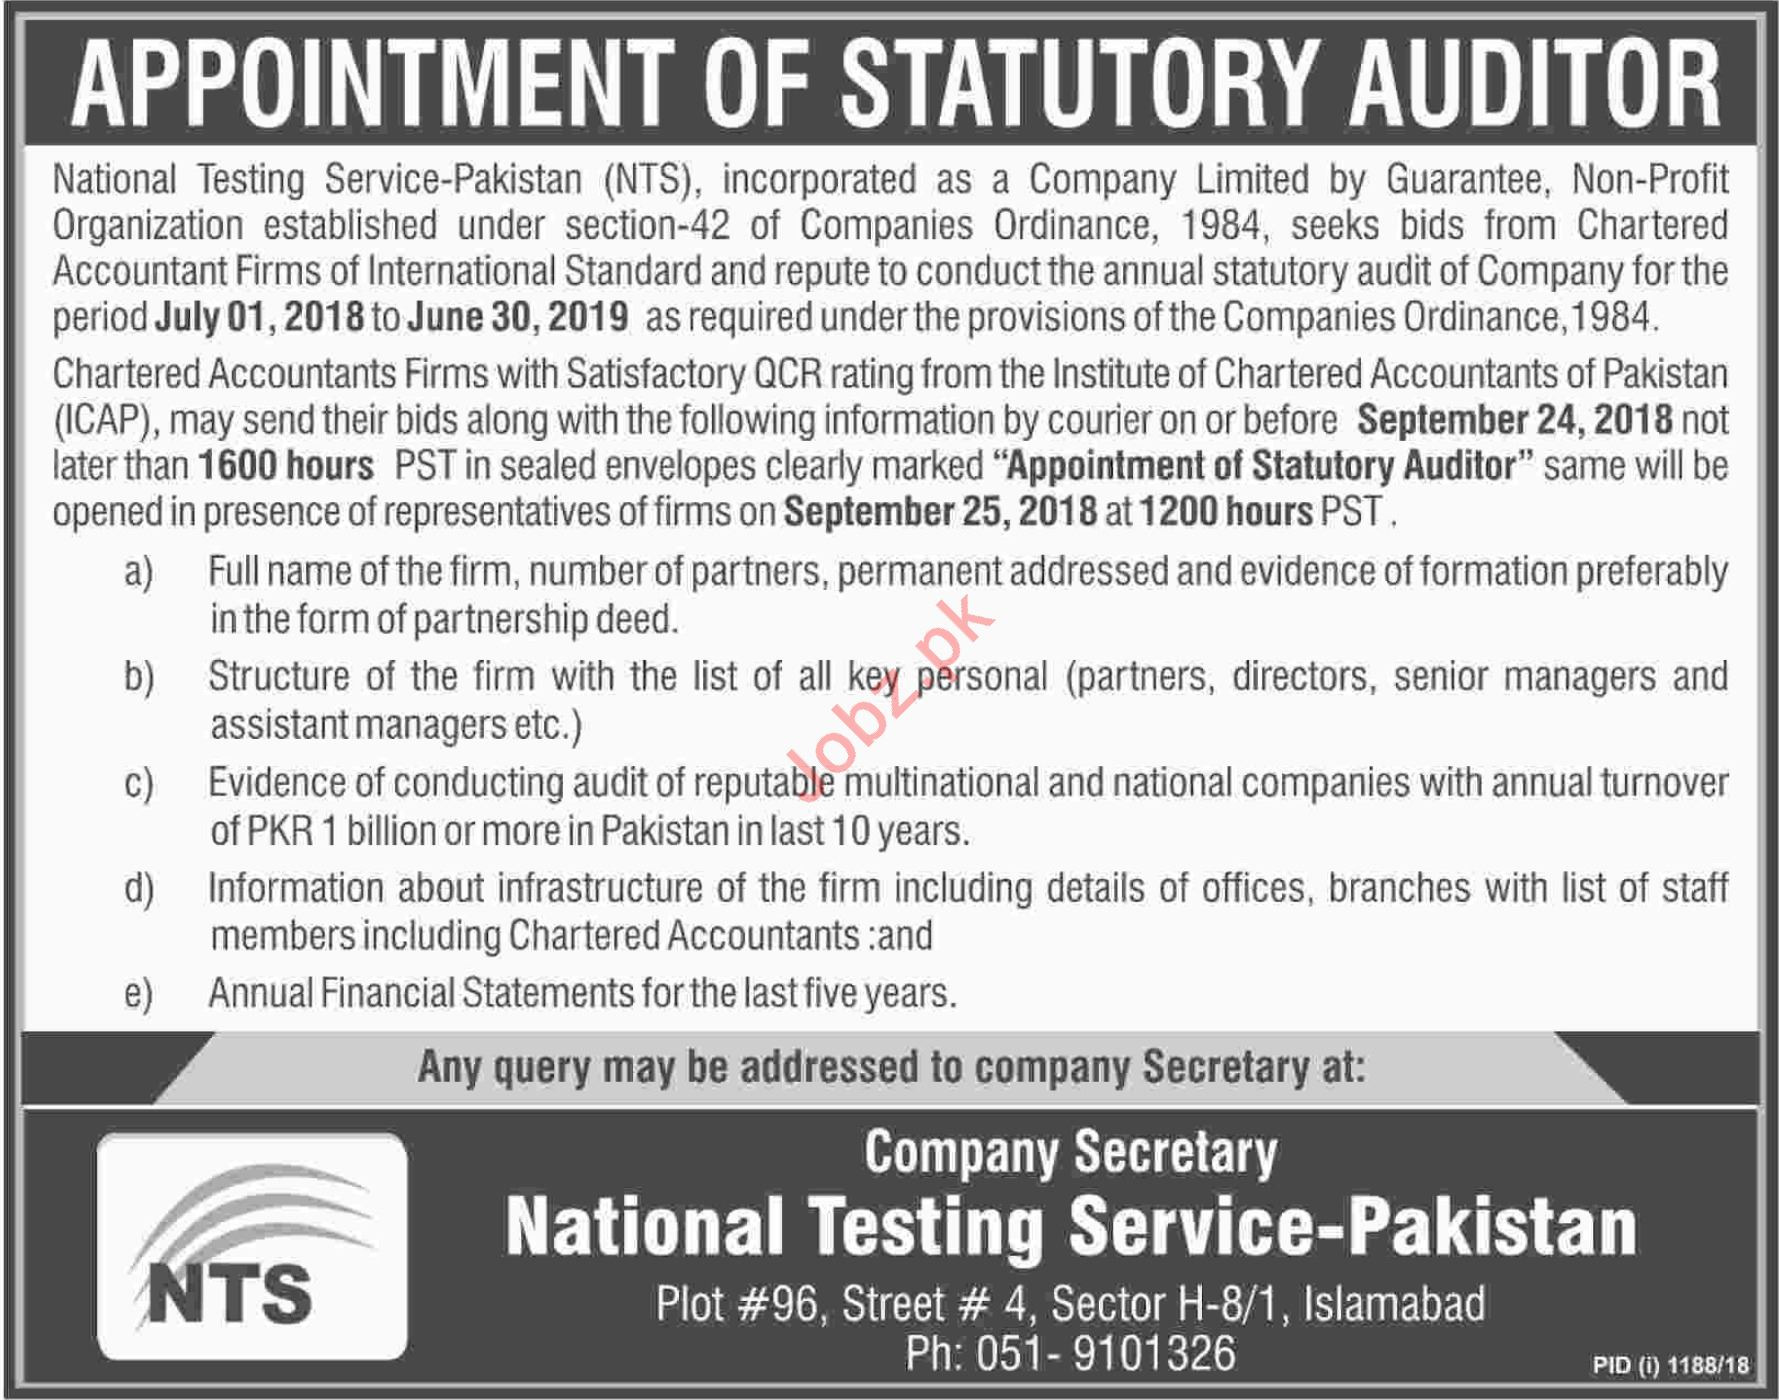 Appointment of Statutory Auditor at NTS